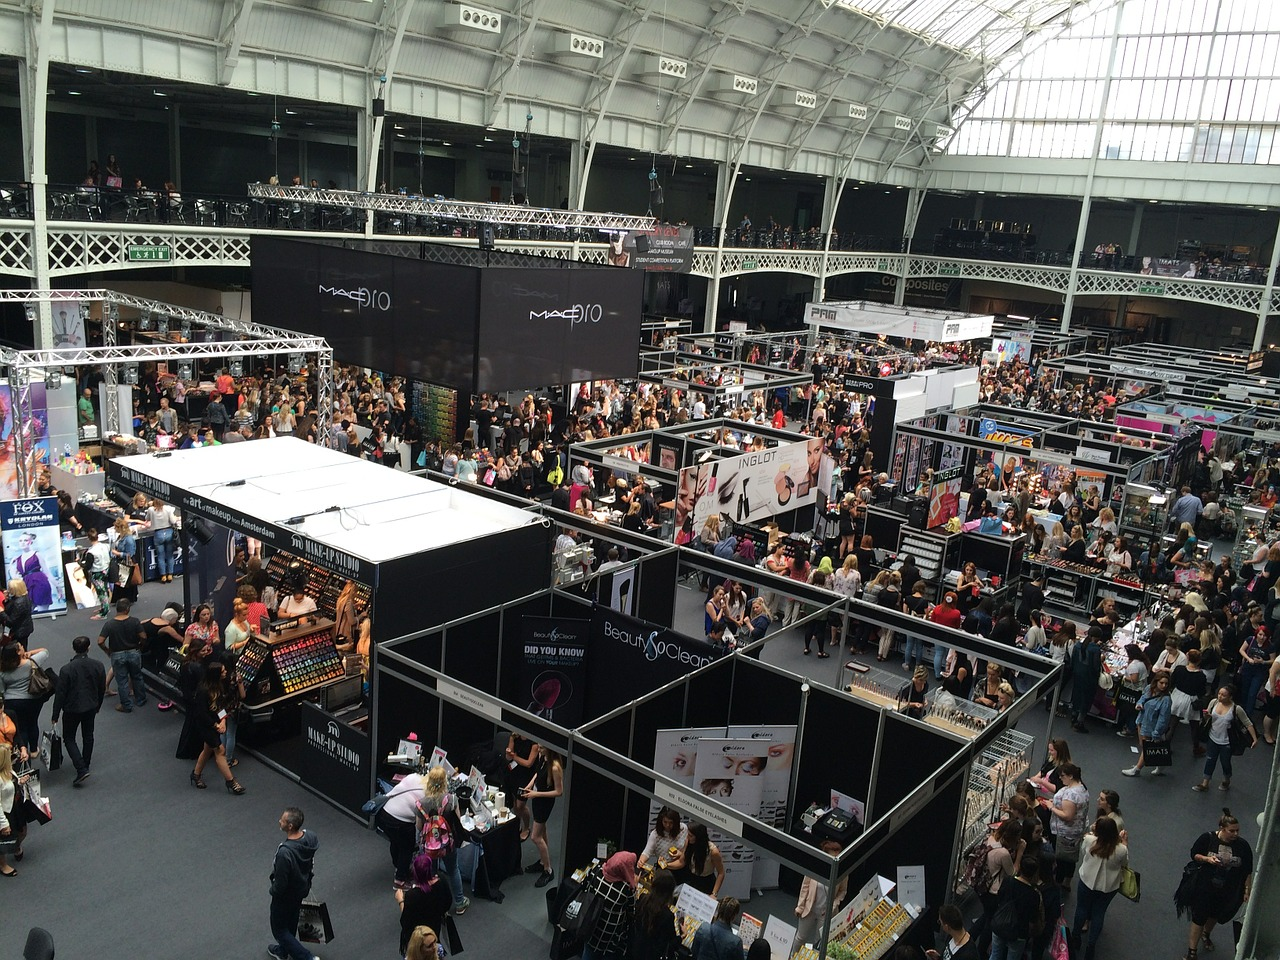 5 Trade show technologies for small businesses in 2018